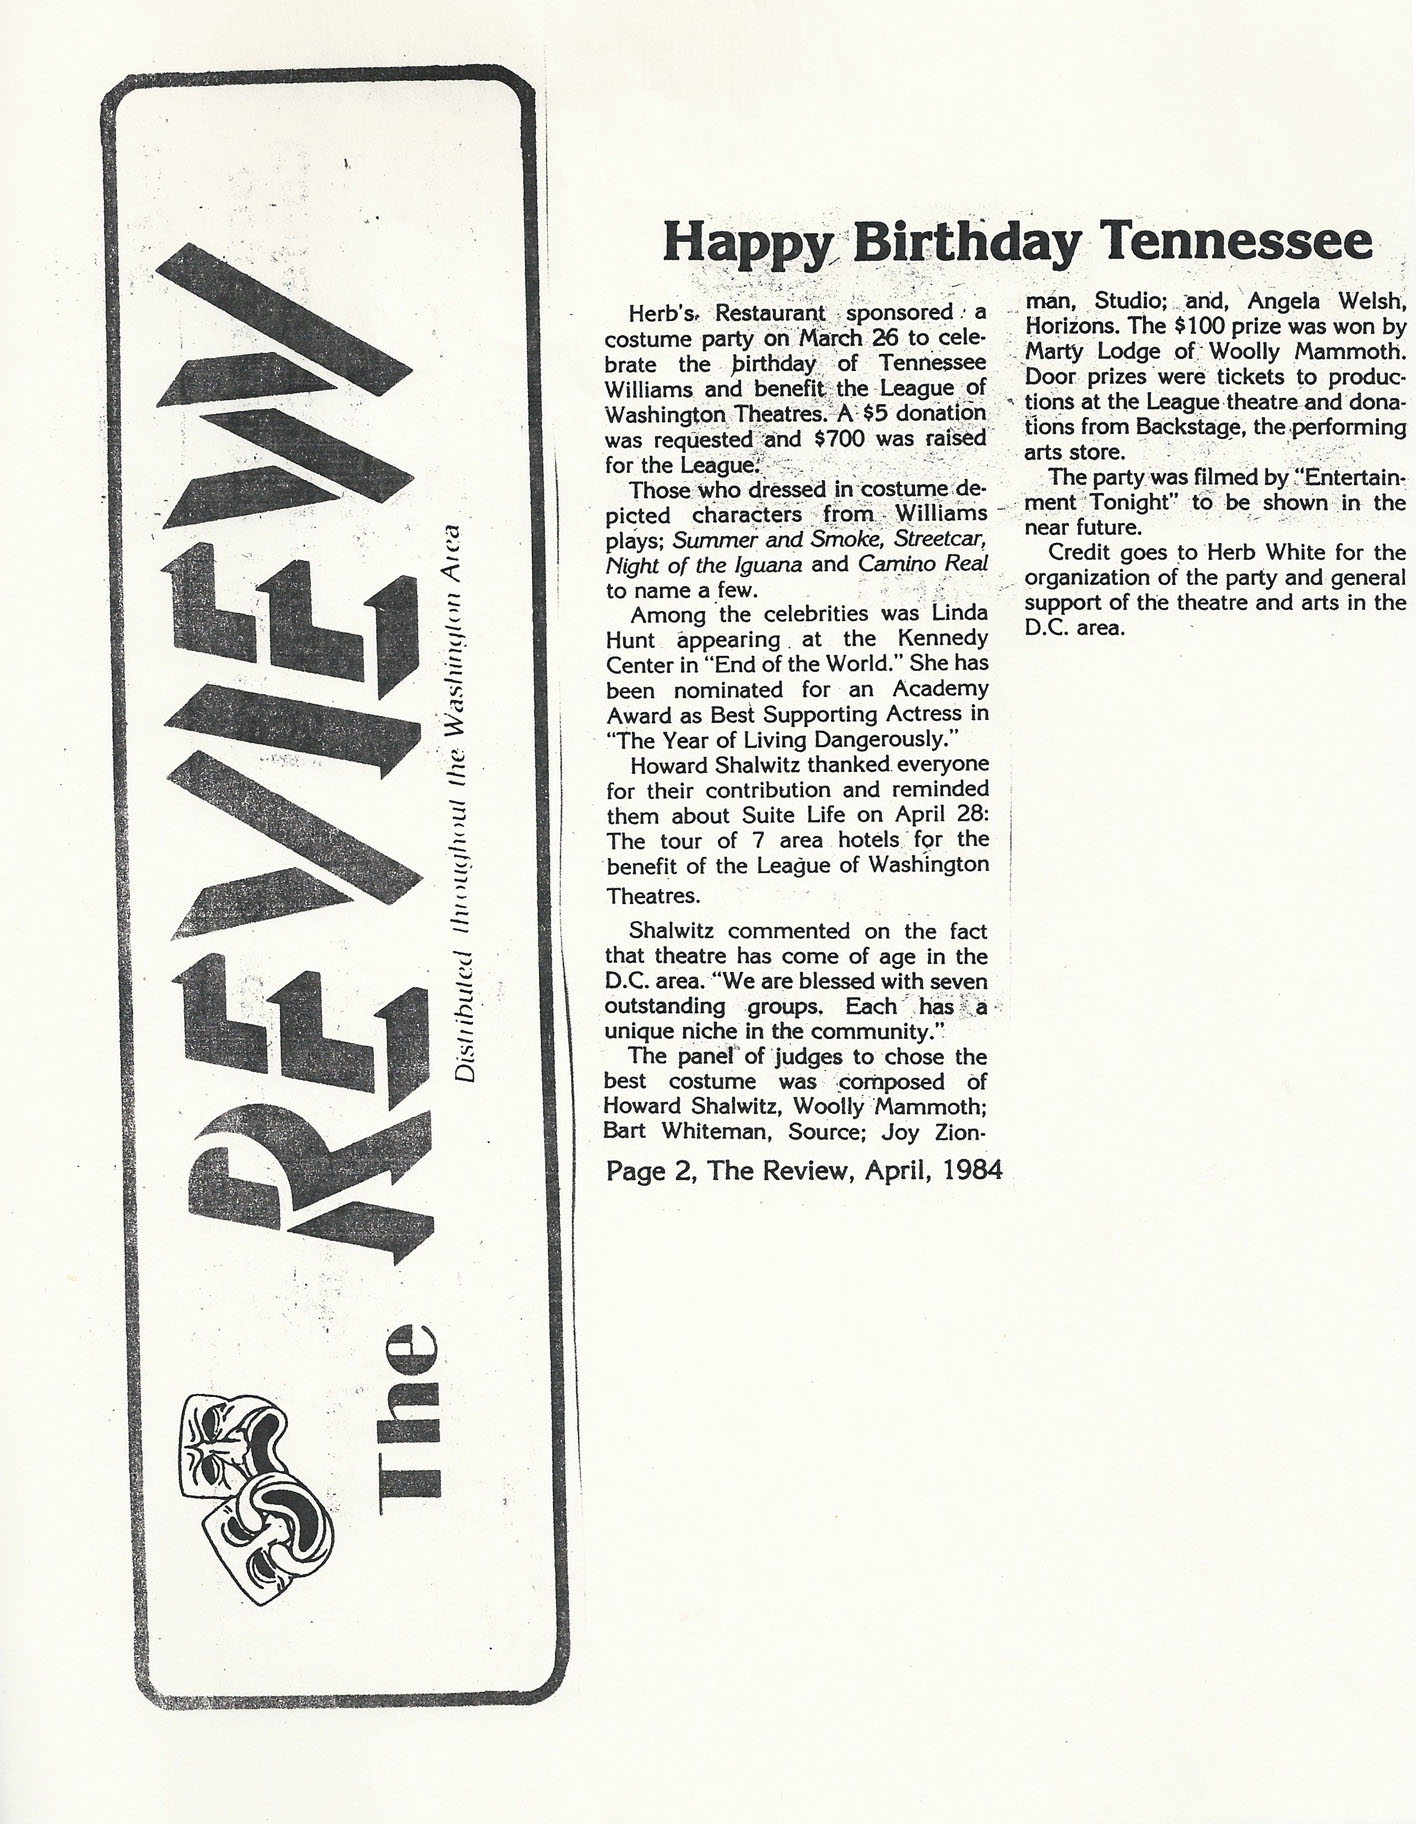 Happy Birthday Tennessee